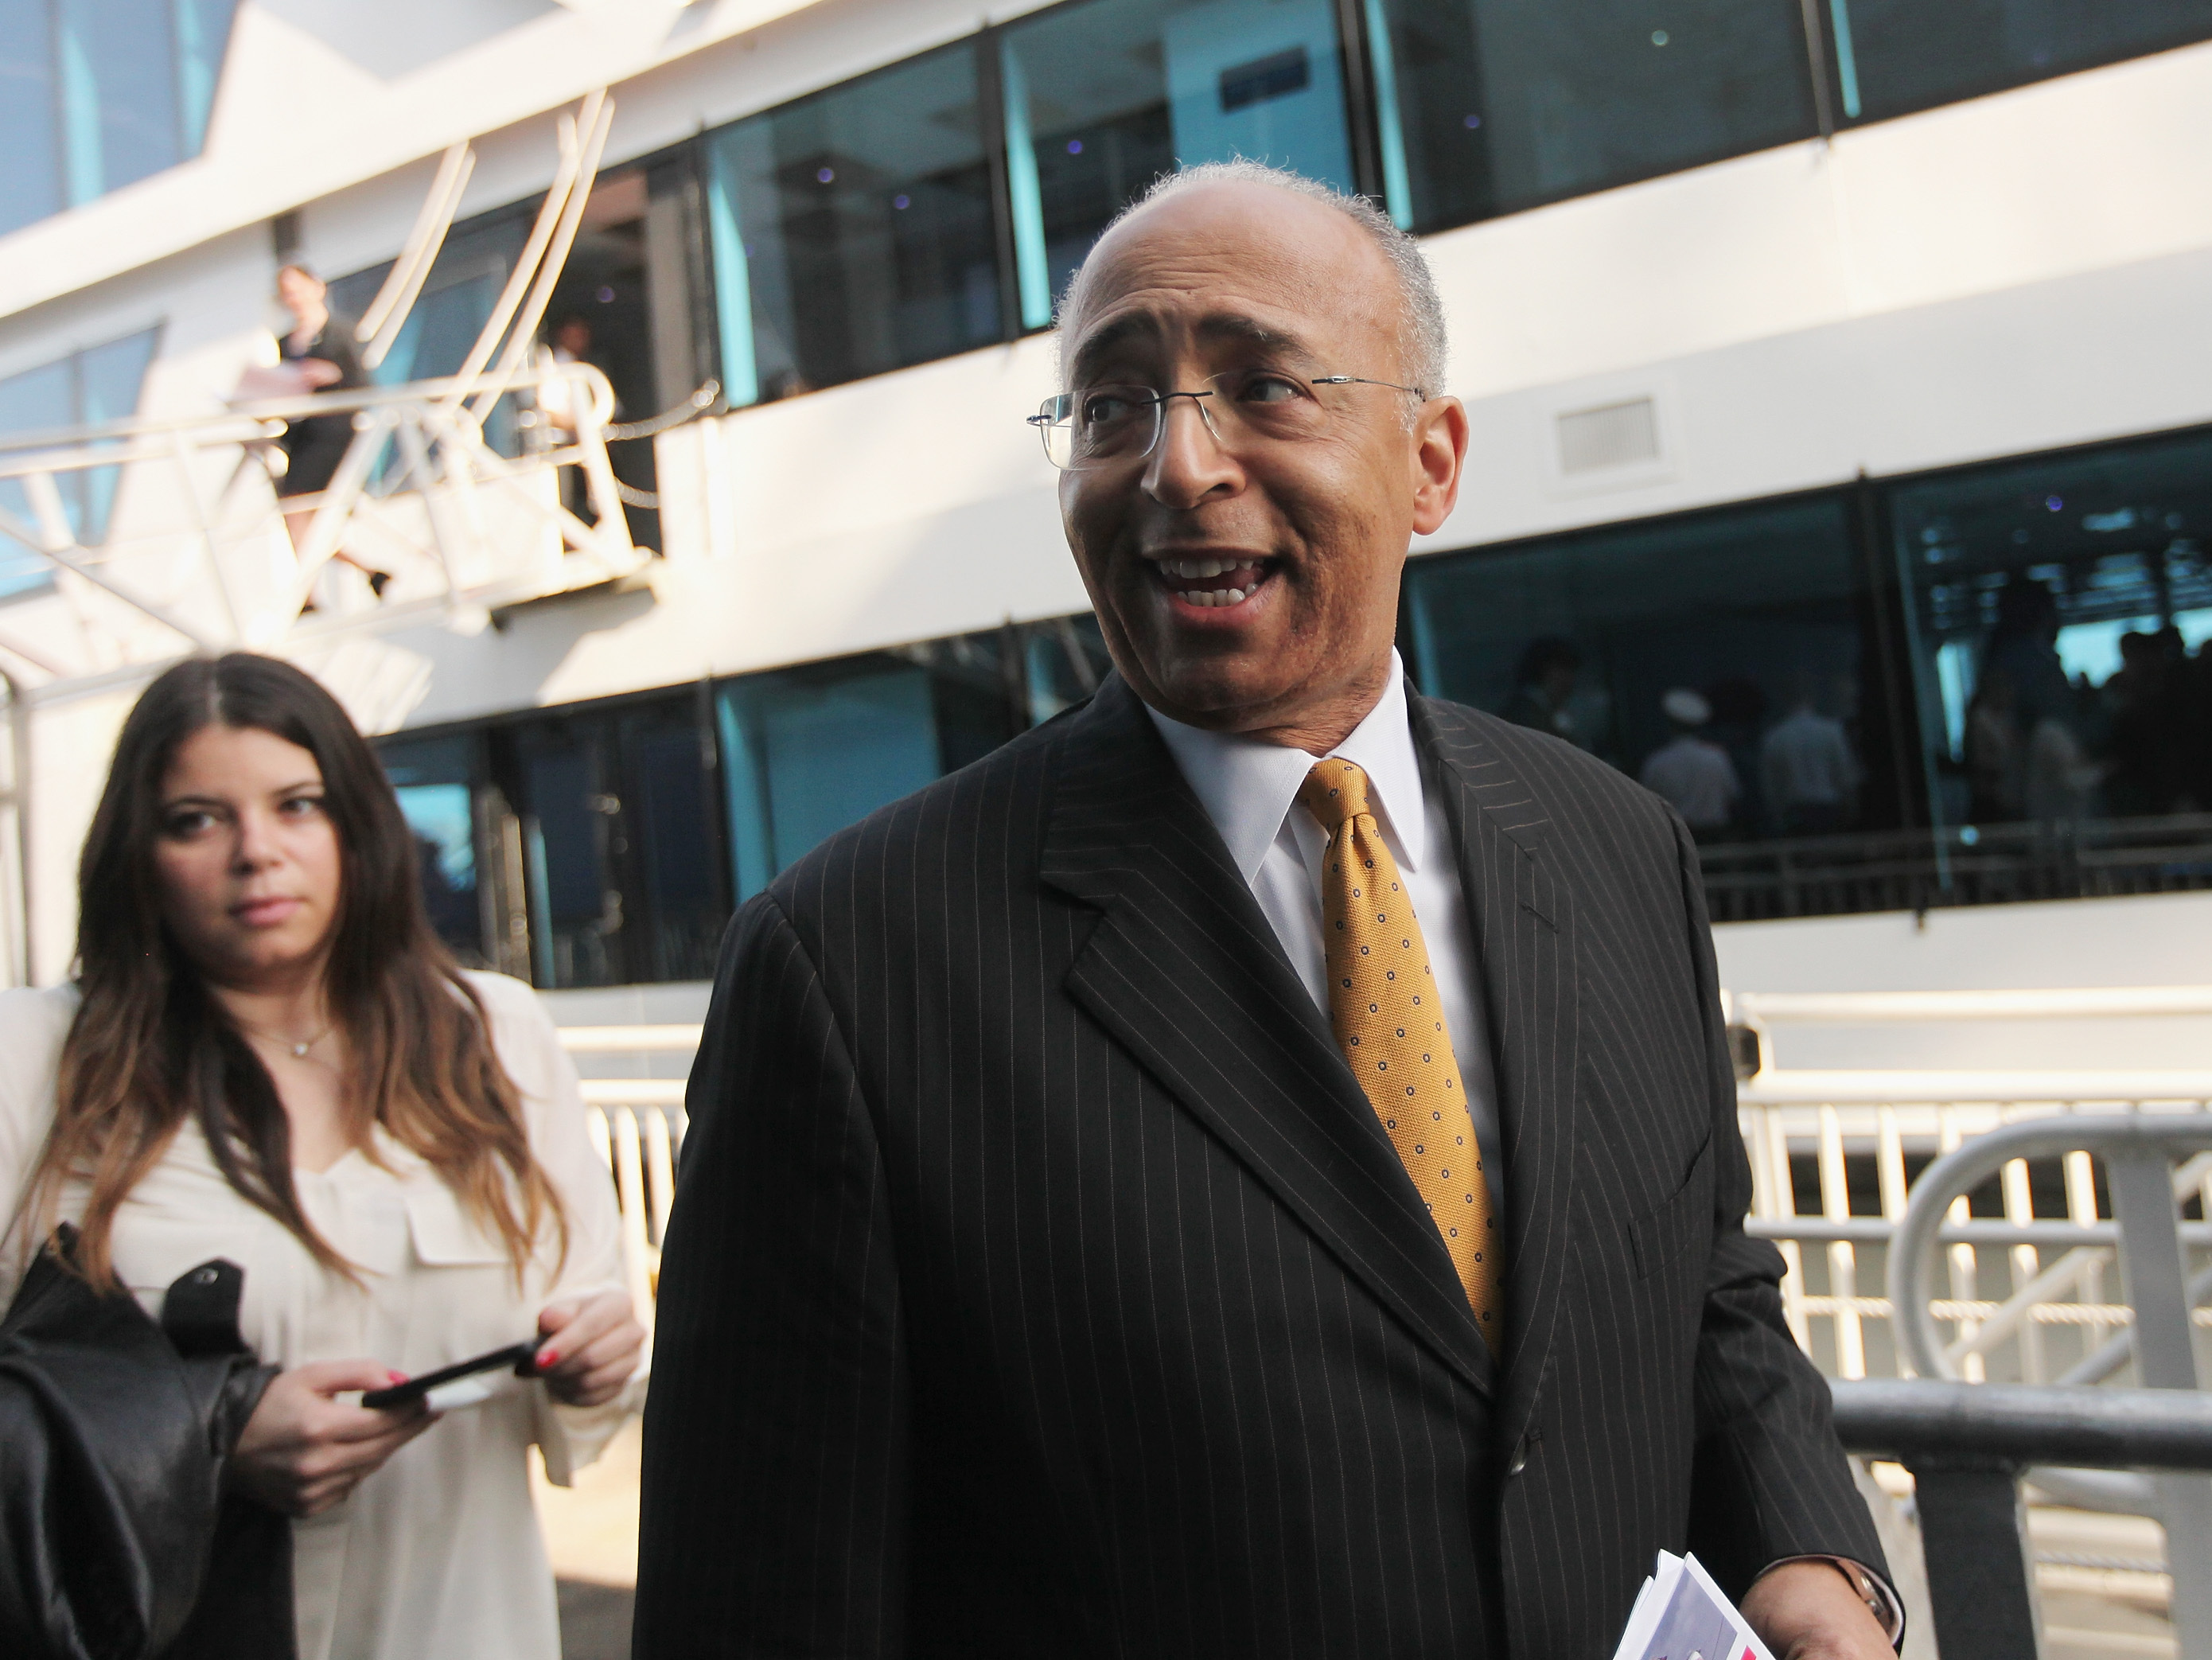 Big Personalities Are Front And Center In NYC Mayoral Race